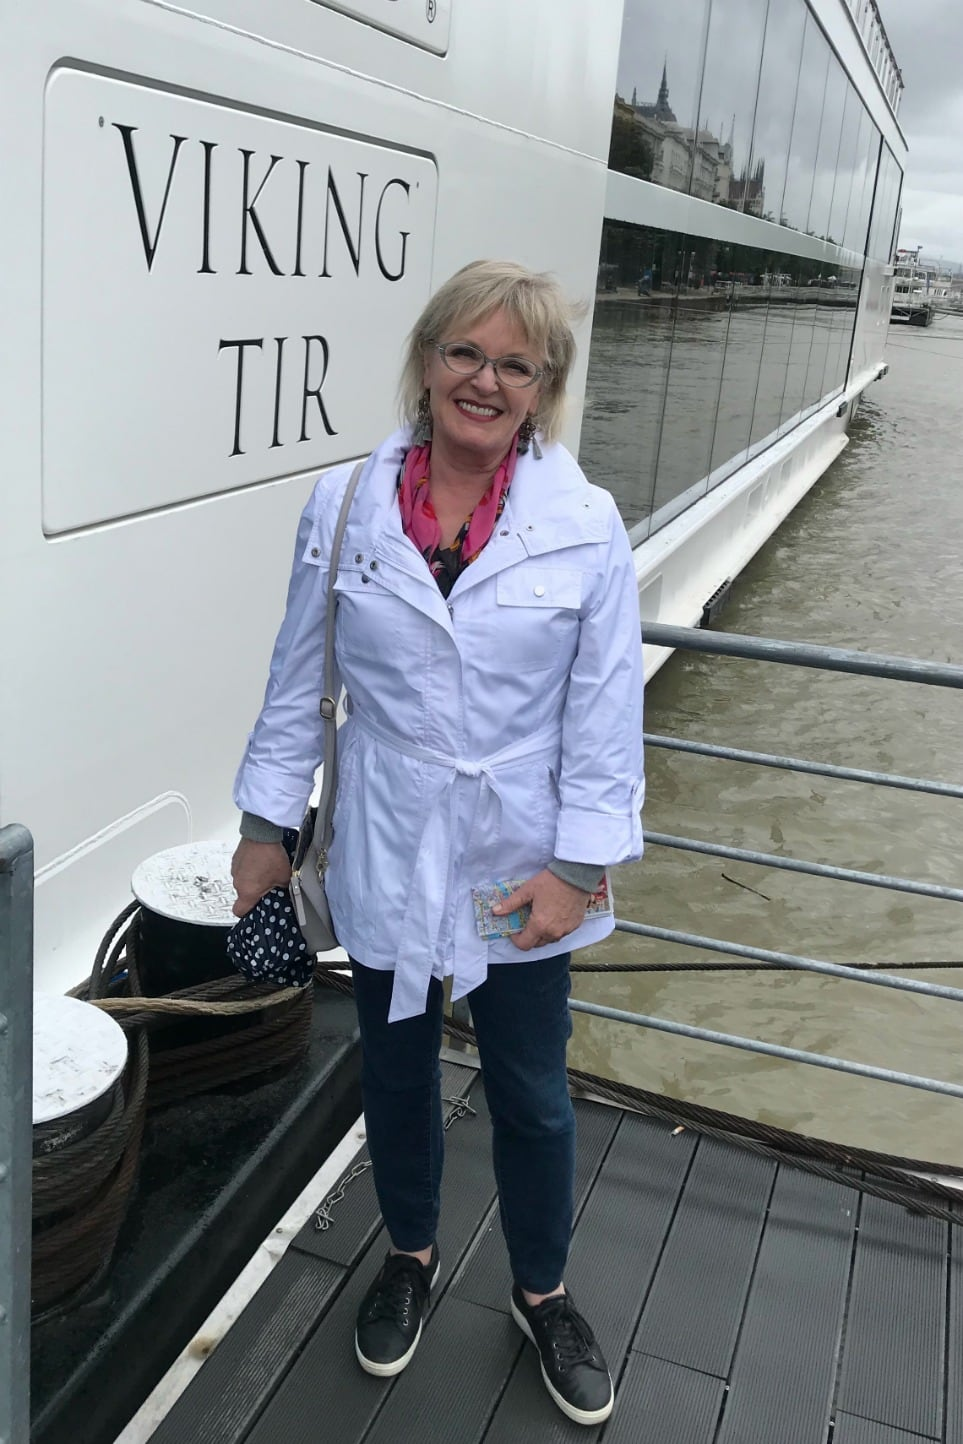 Jennifer Connolly of A Well Styled Life wearing white jacket and blue jeans boarding a Viking ship in Bucharest